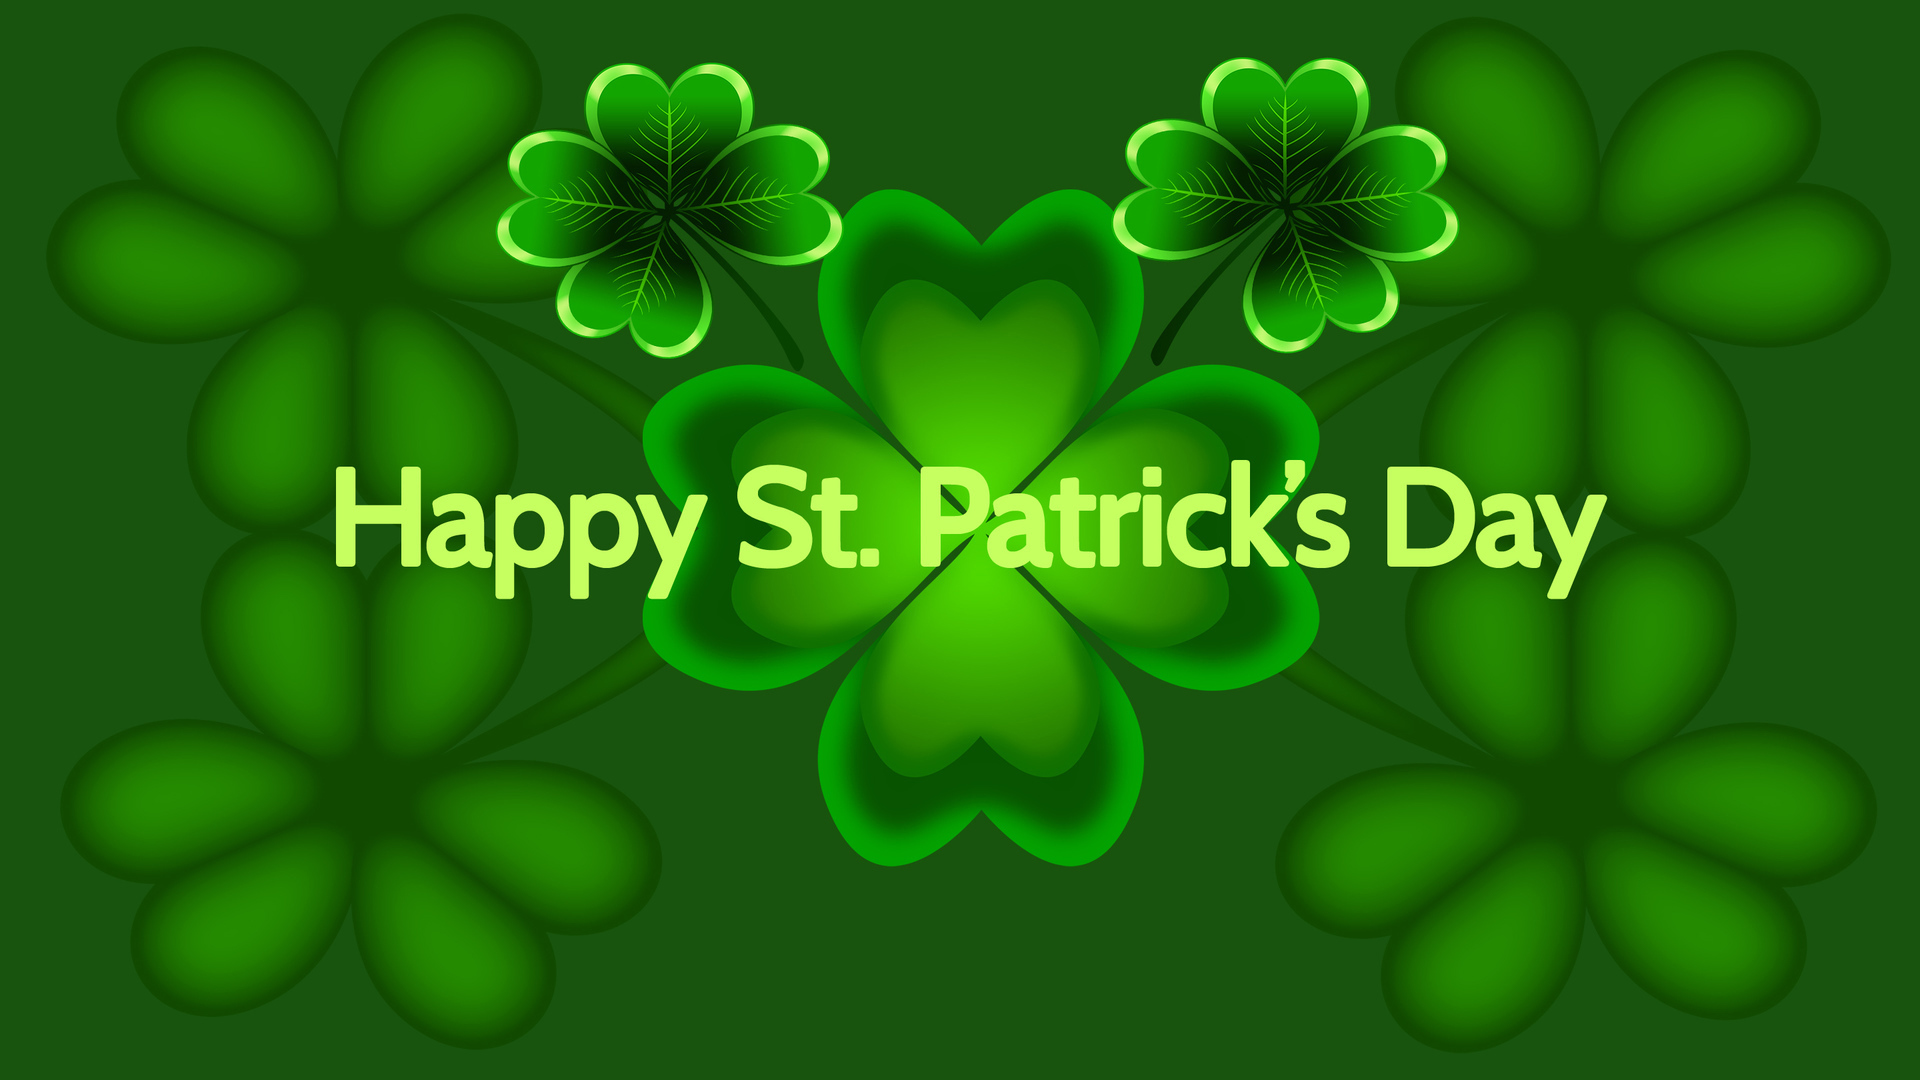 Free Download Backgrounds St Patricks Day Desktop 1920x1080 For